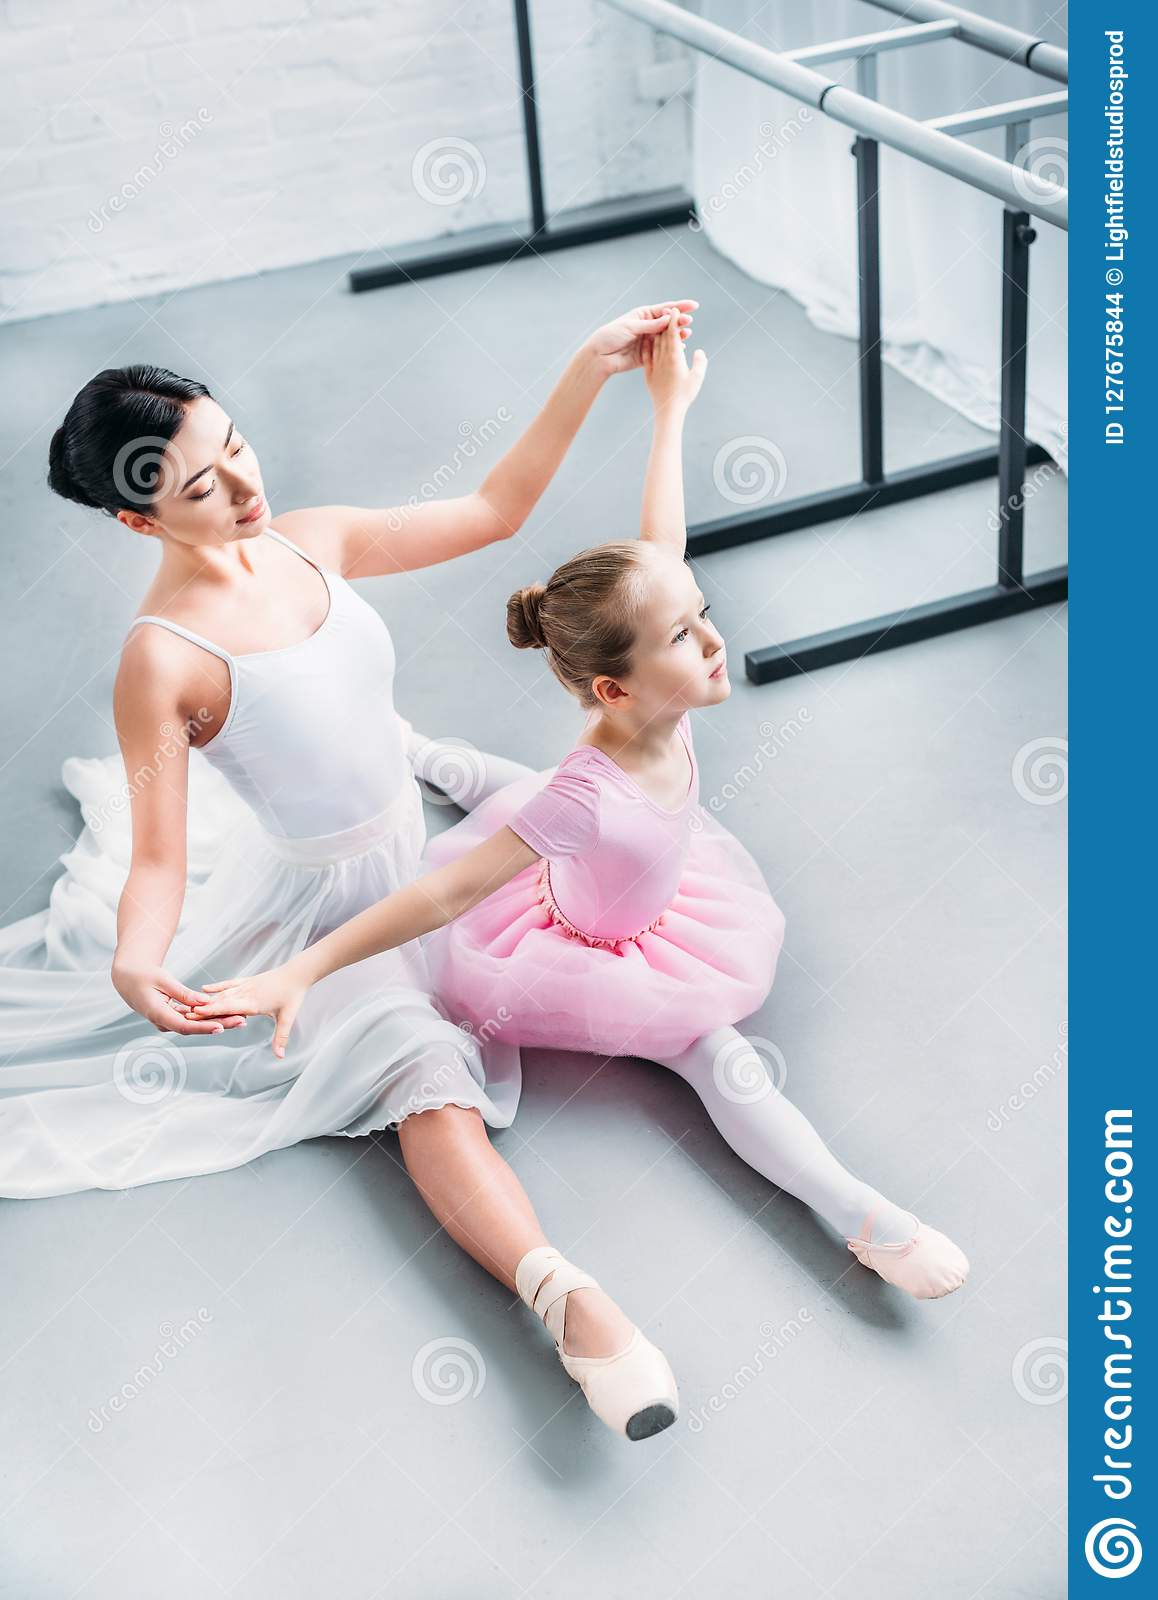 high angle view of adult ballerina exercising with cute little child